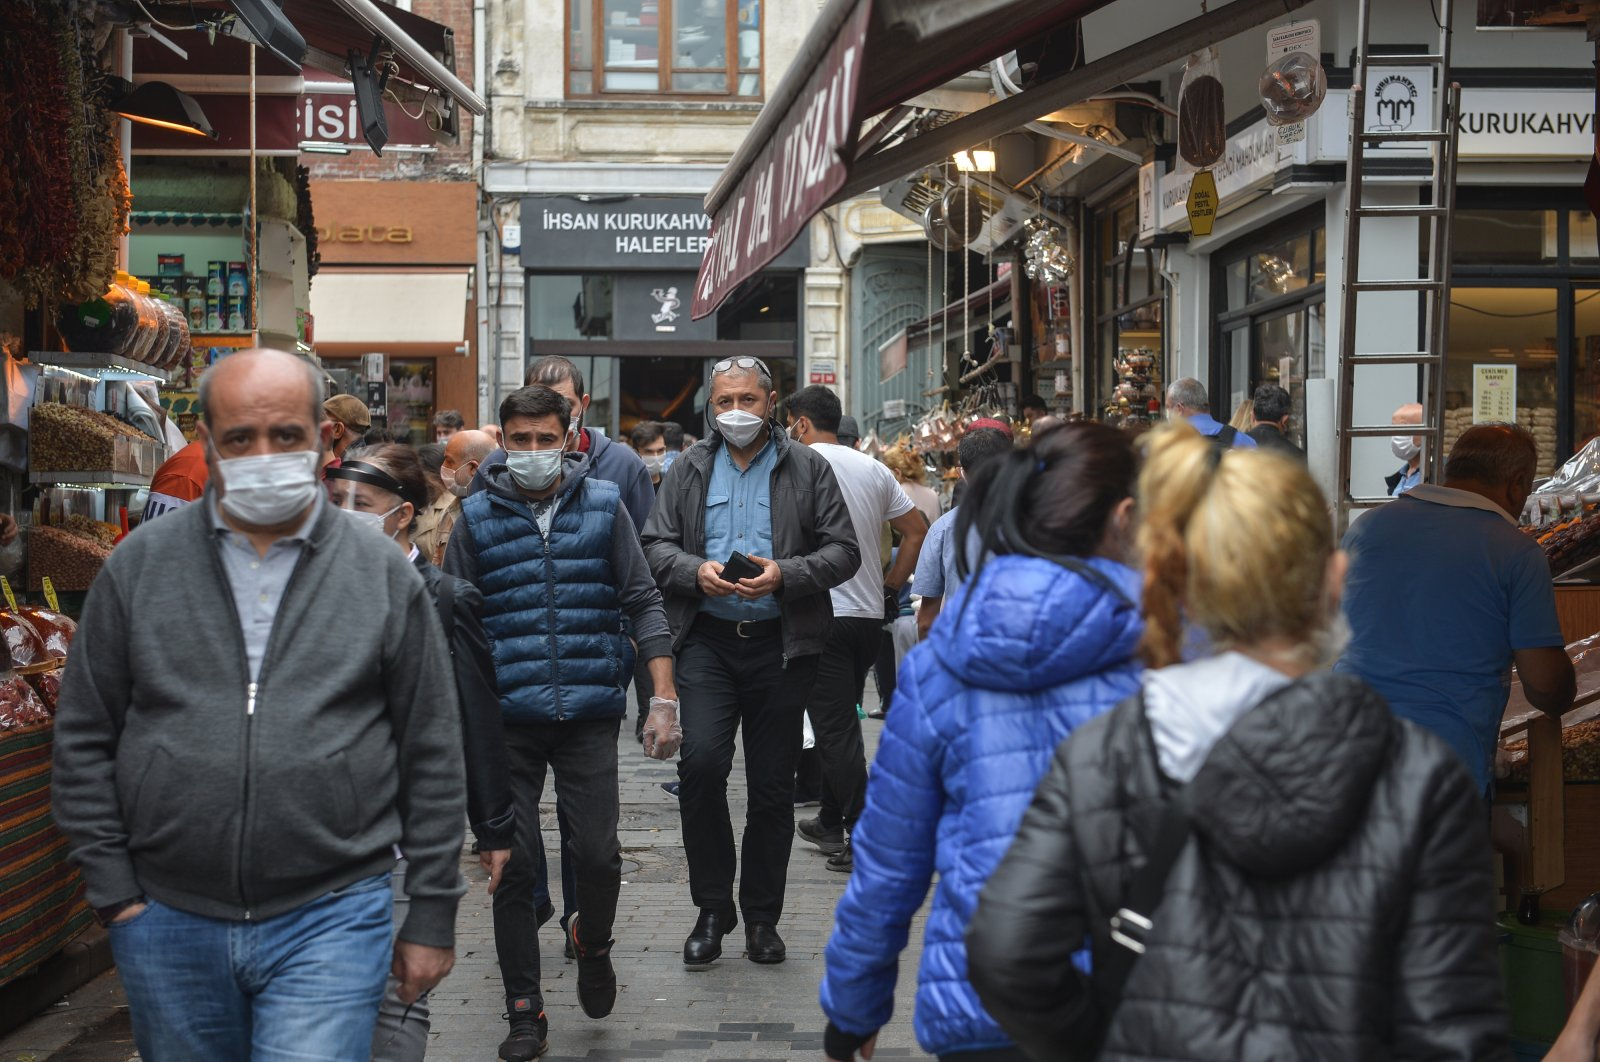 People wearing protective masks walk in a marketplace, in Istanbul, Turkey, June 3, 2020. (DHA Photo)